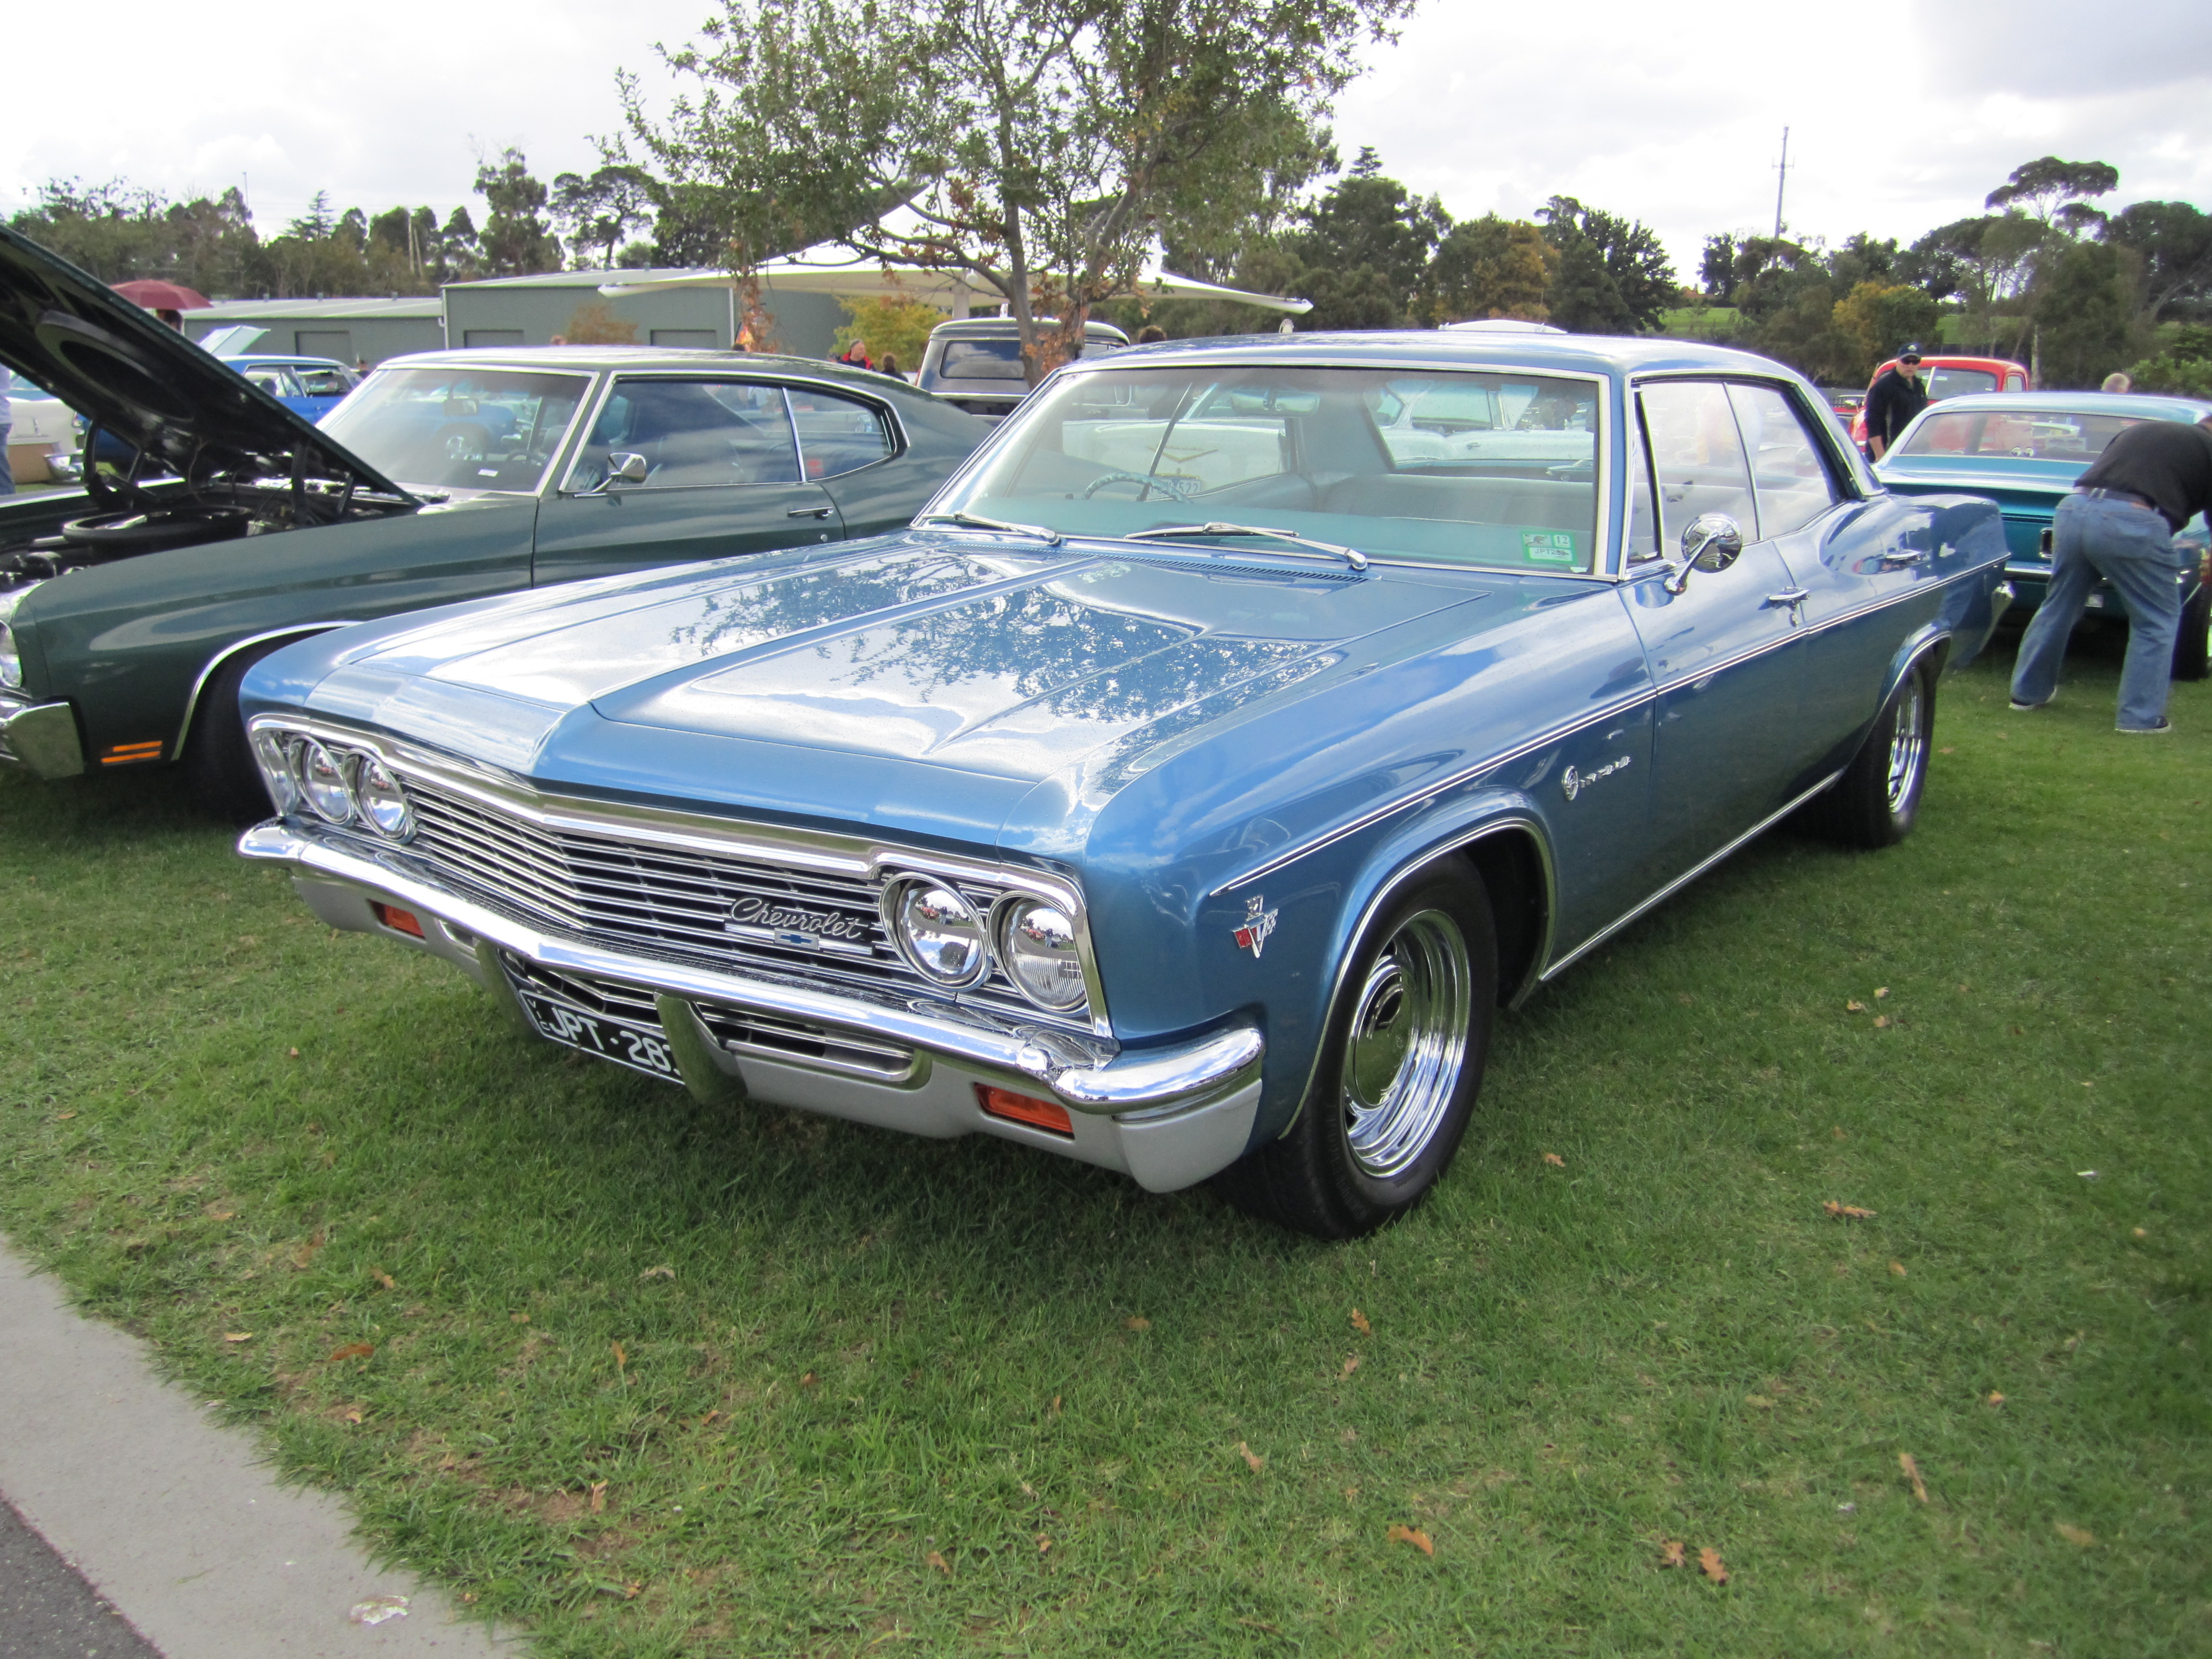 File:1966 Chevrolet Impala 4 door Hardtop.jpg - Wikimedia Commons